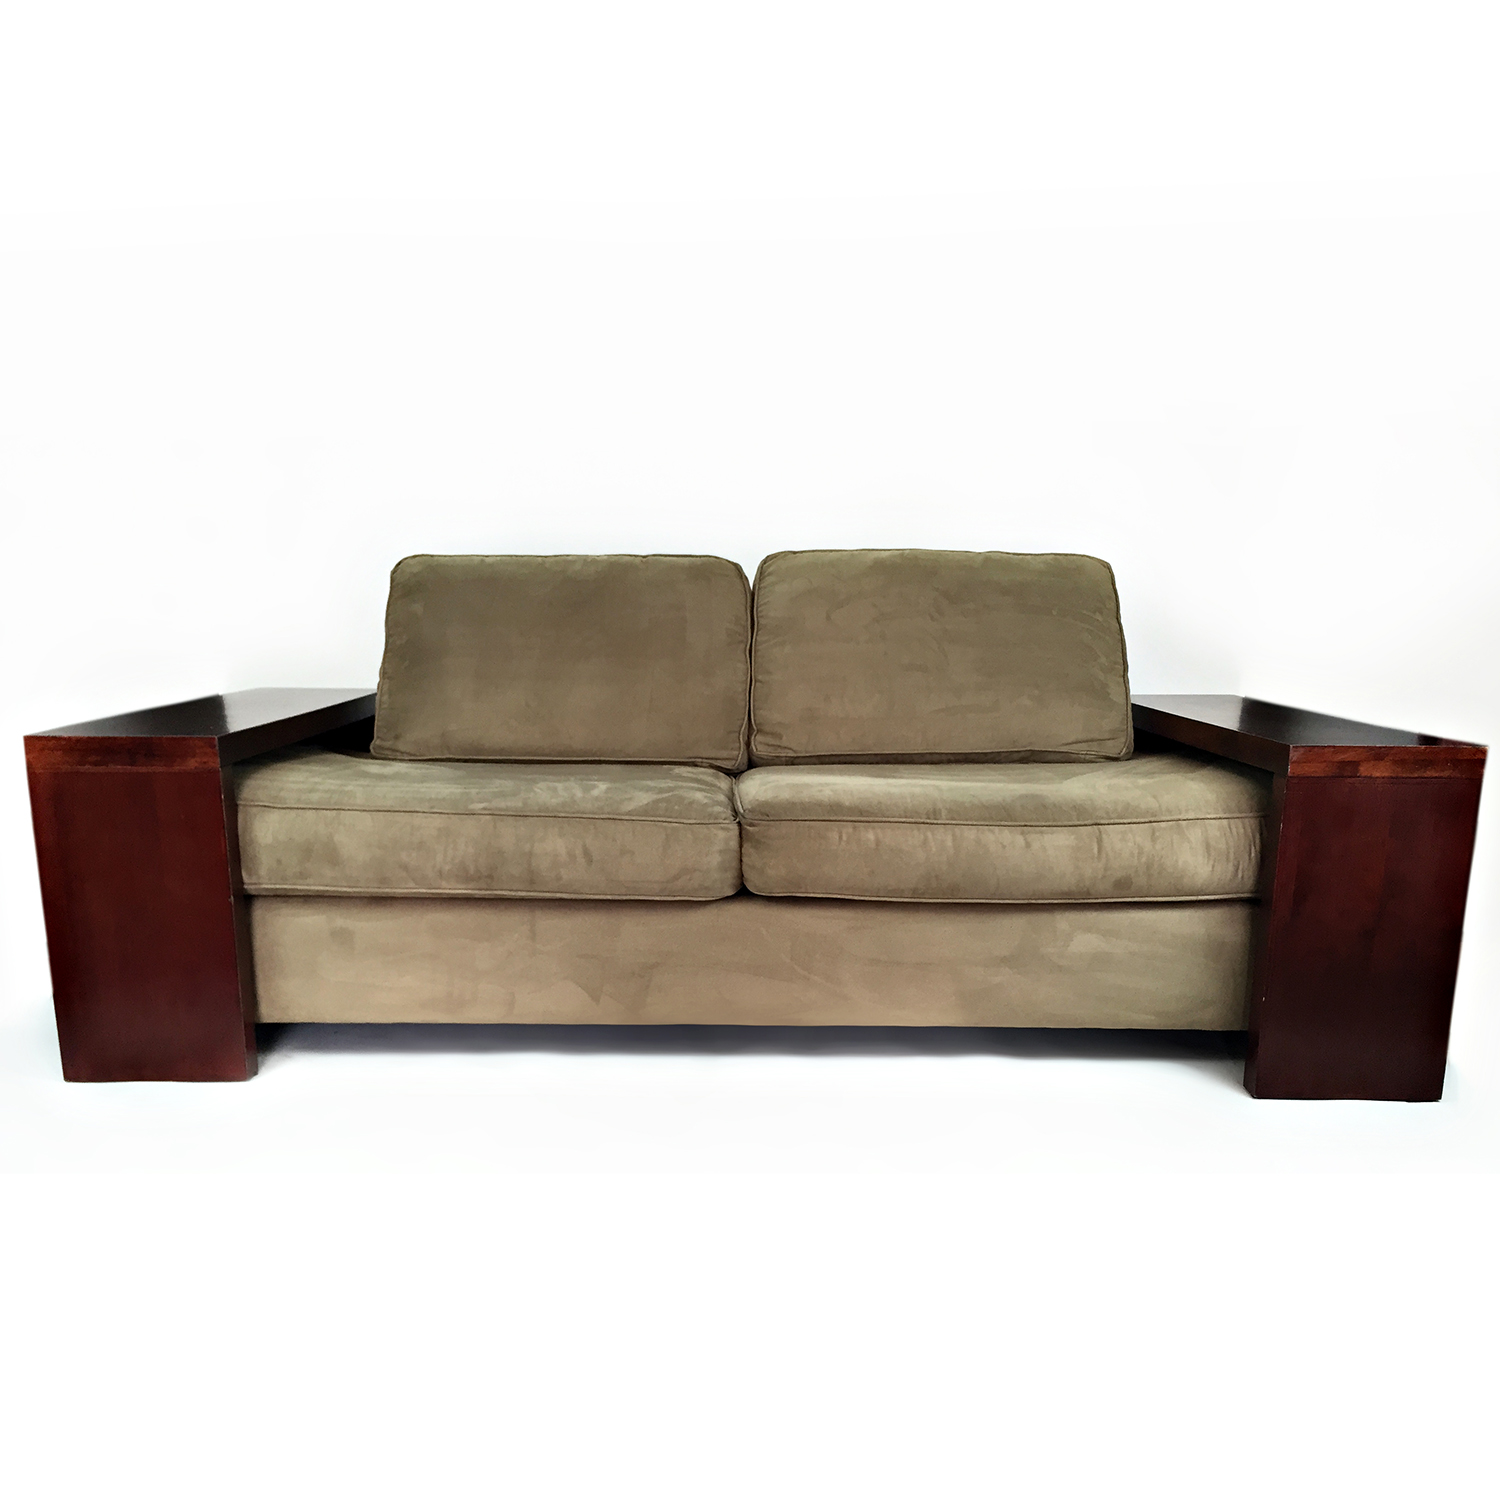 shop Max Home Max Home Sofa with End Table Set online